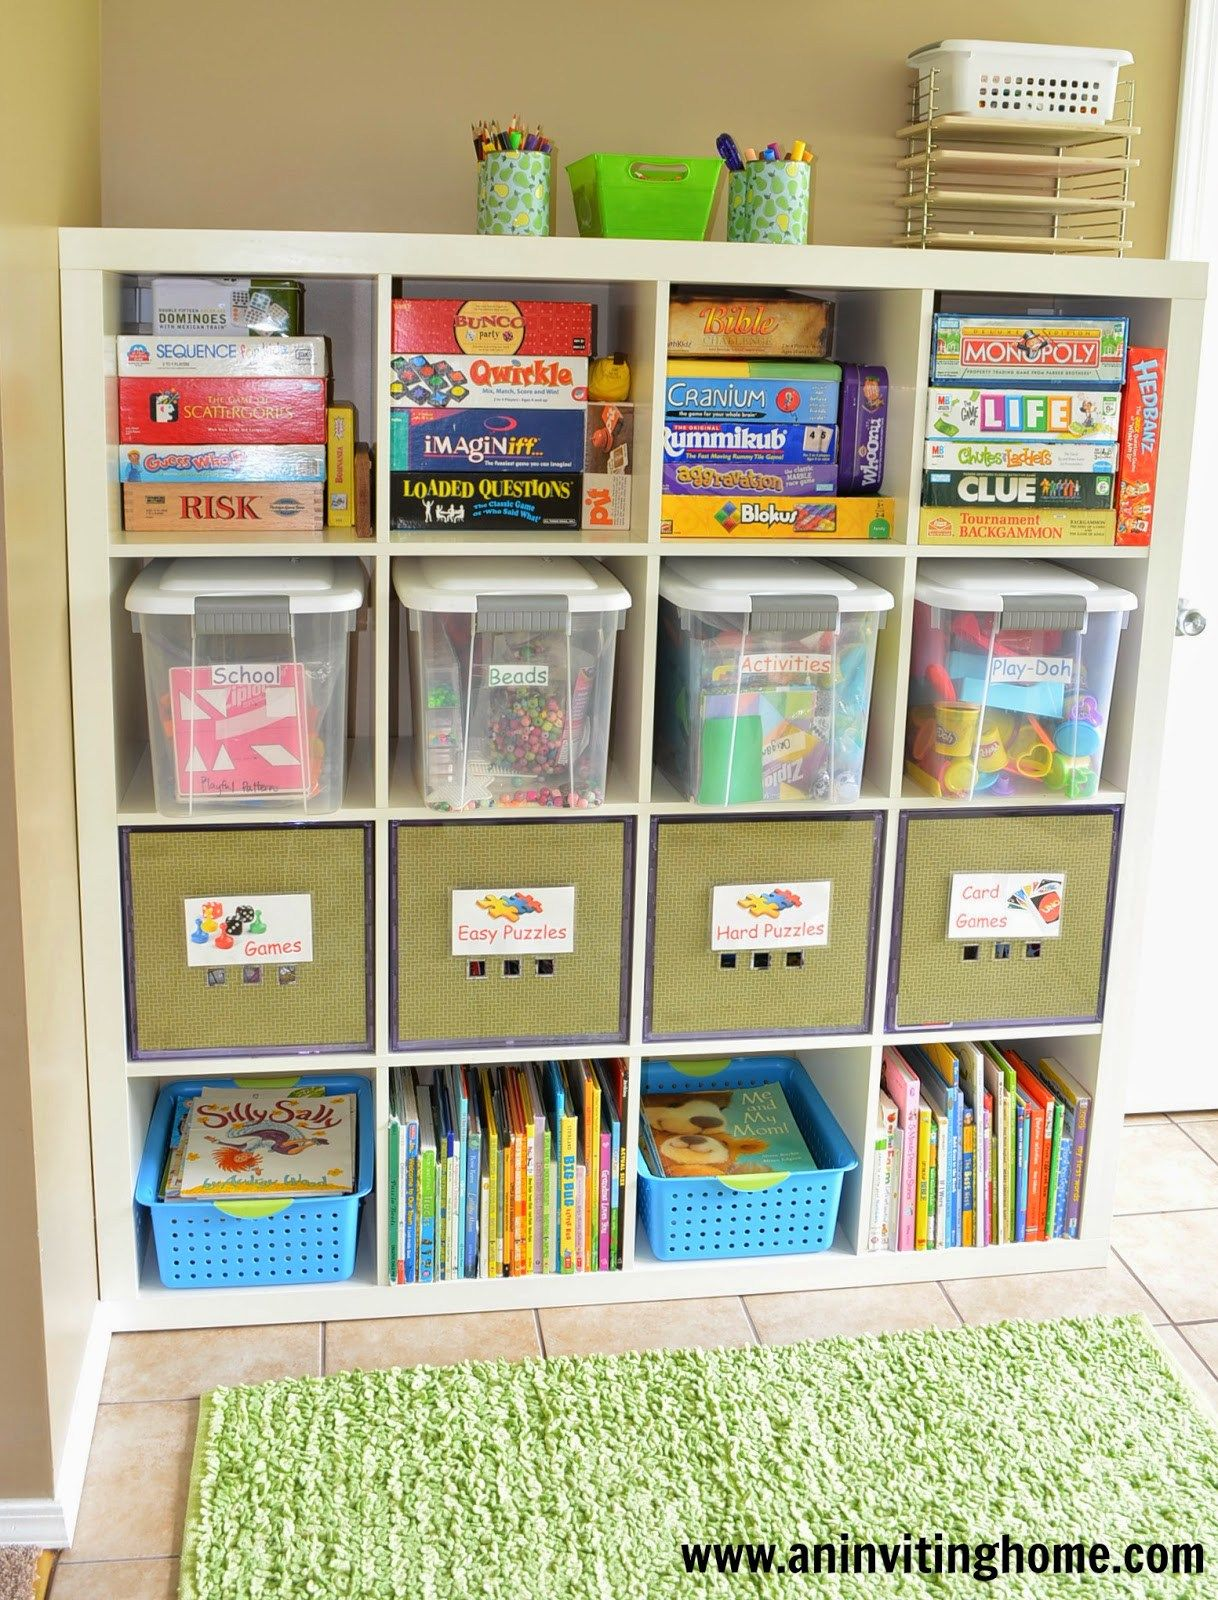 How to organize games and toys in your kids playroom. Great storage ideas! images